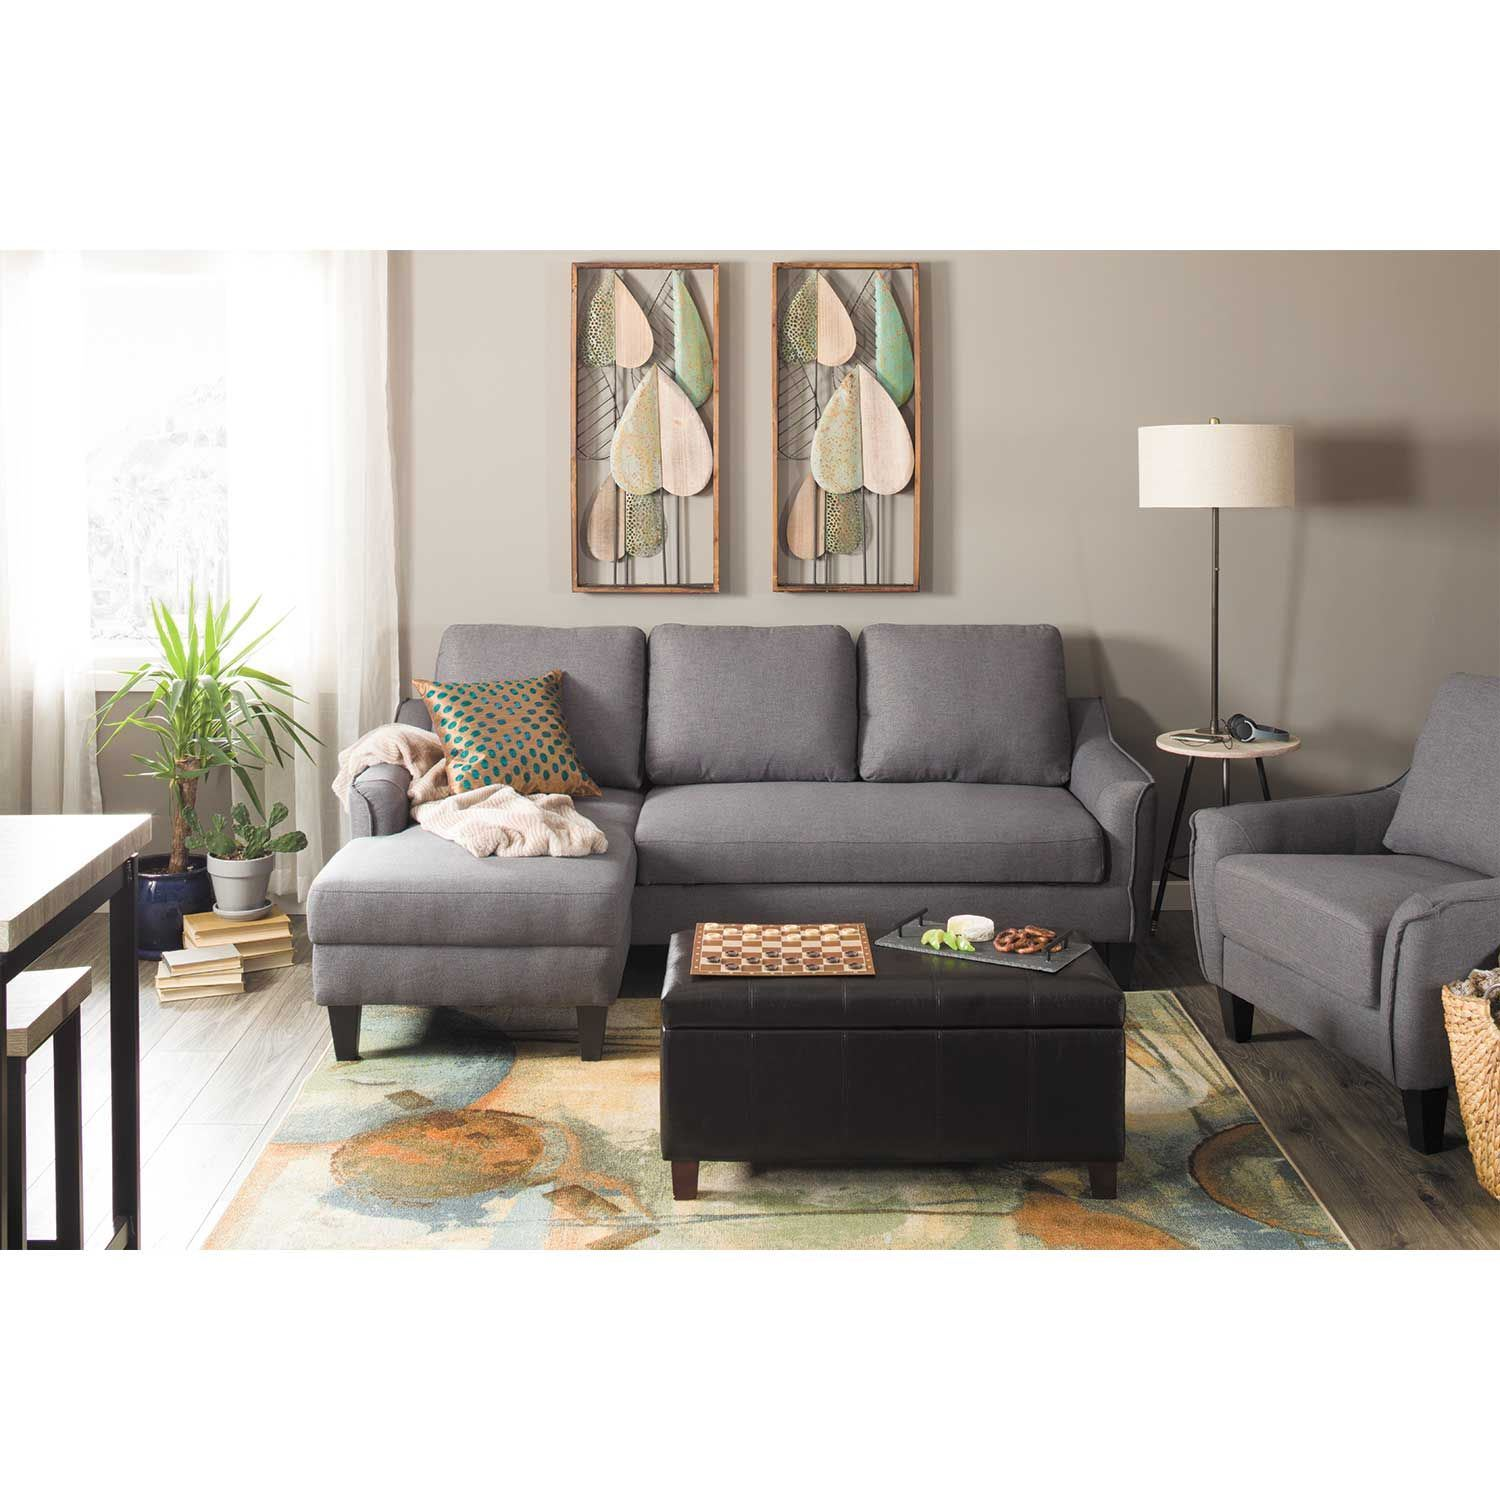 Jarreau Gray Sofa Sleeper 1150271 Ashley Furniture Afw